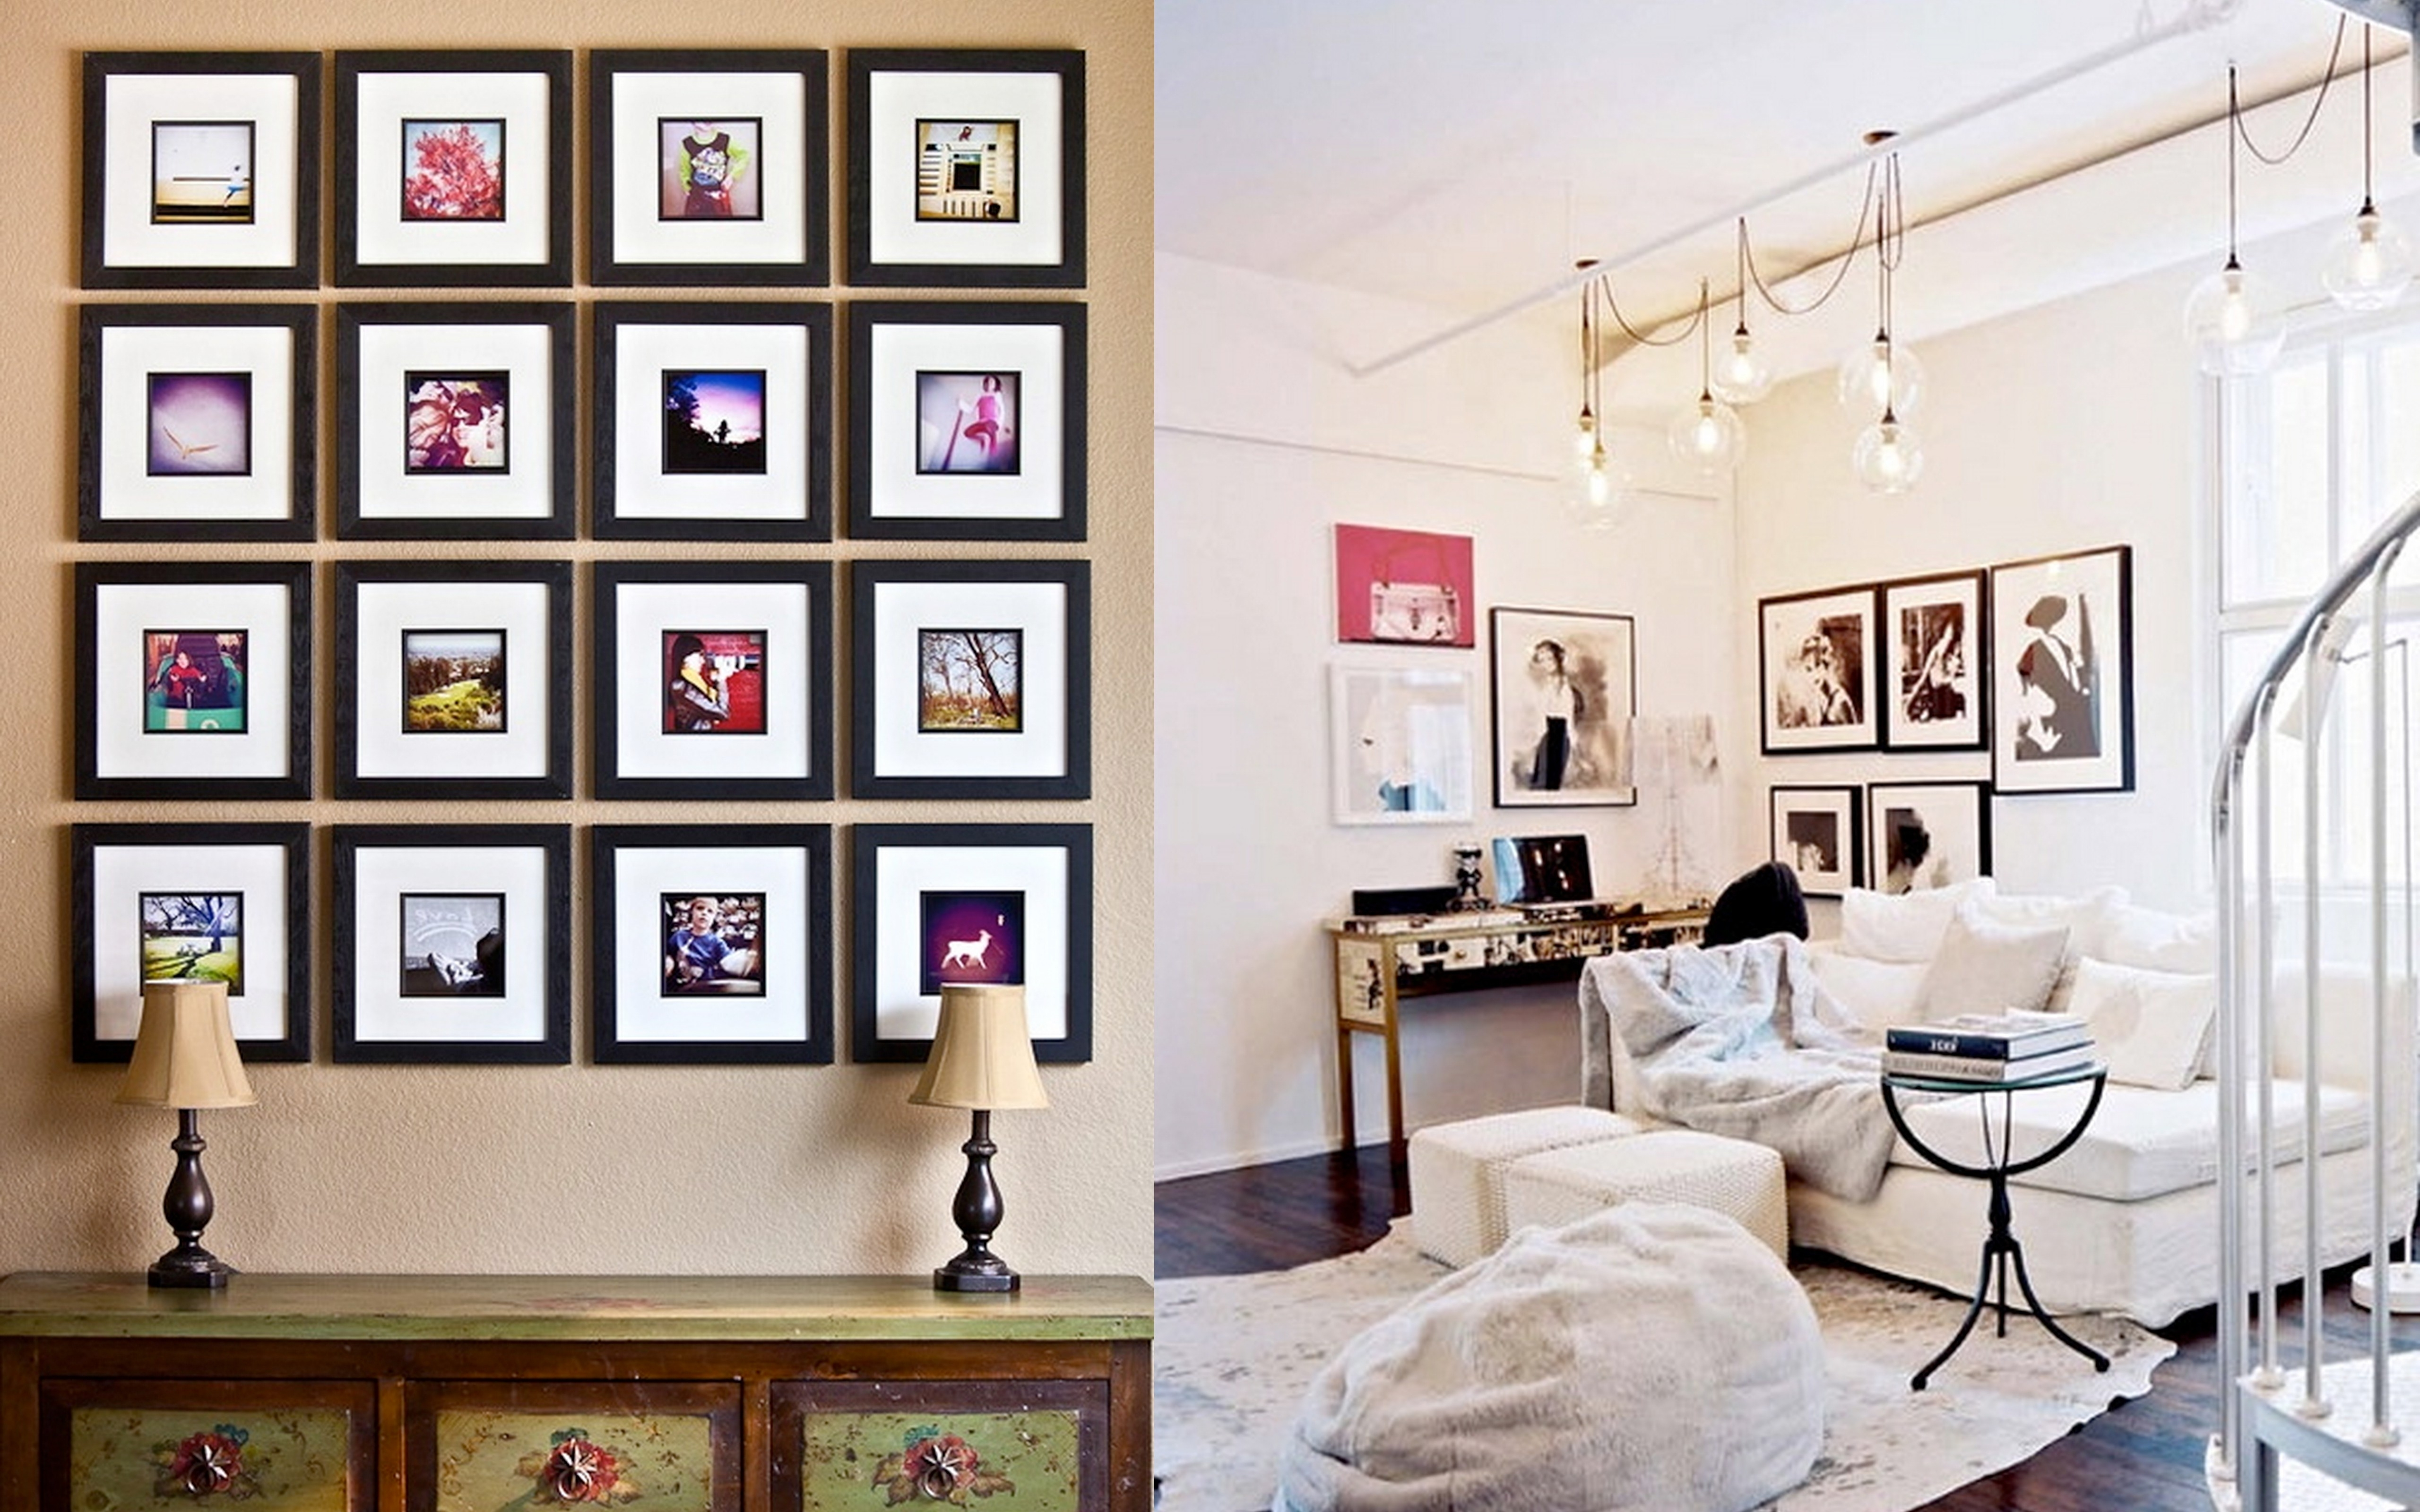 Favorite Frames Wall Accents With Decorations : Cute Kids Room With Colorful Art Wall Decor Ideas (View 8 of 15)